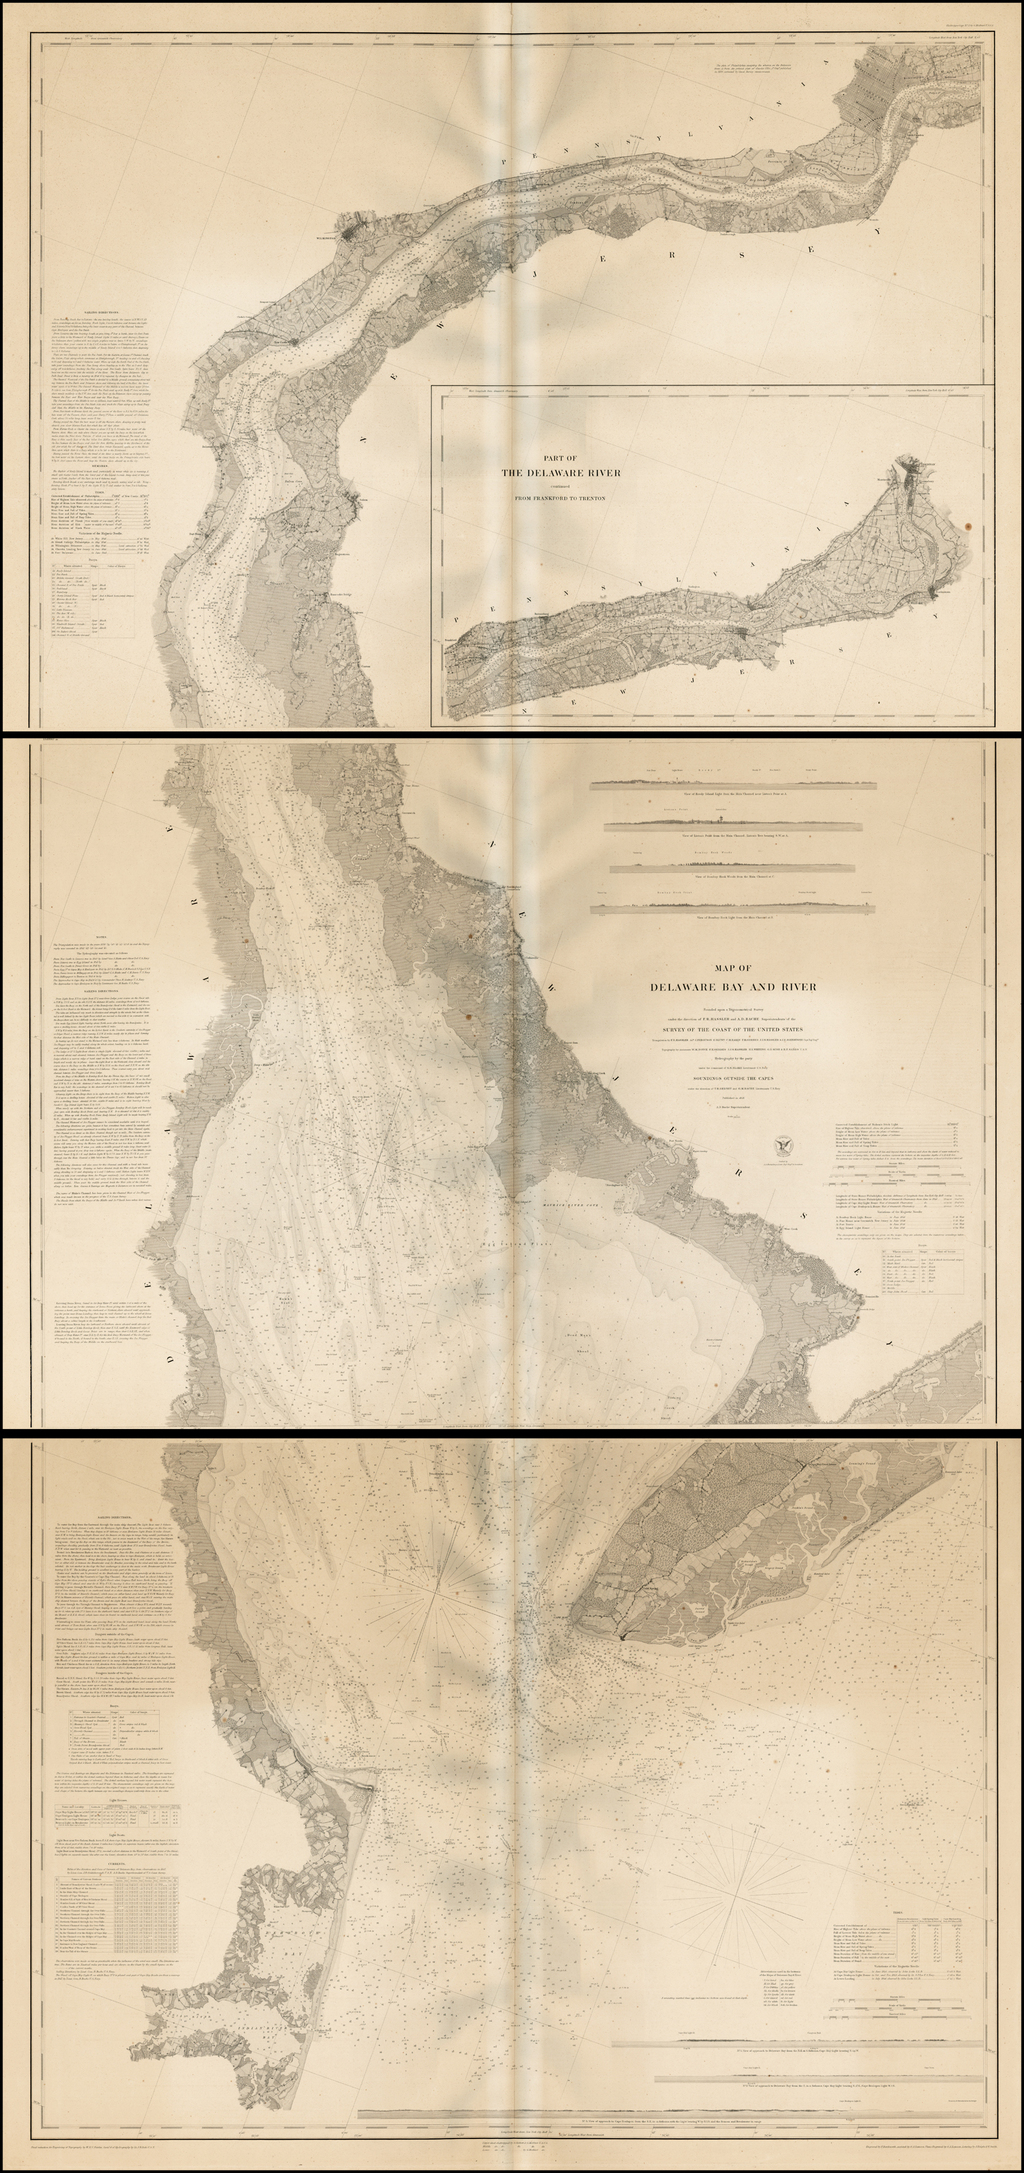 Map of Delaware Bay and River By U.S. Coast Survey